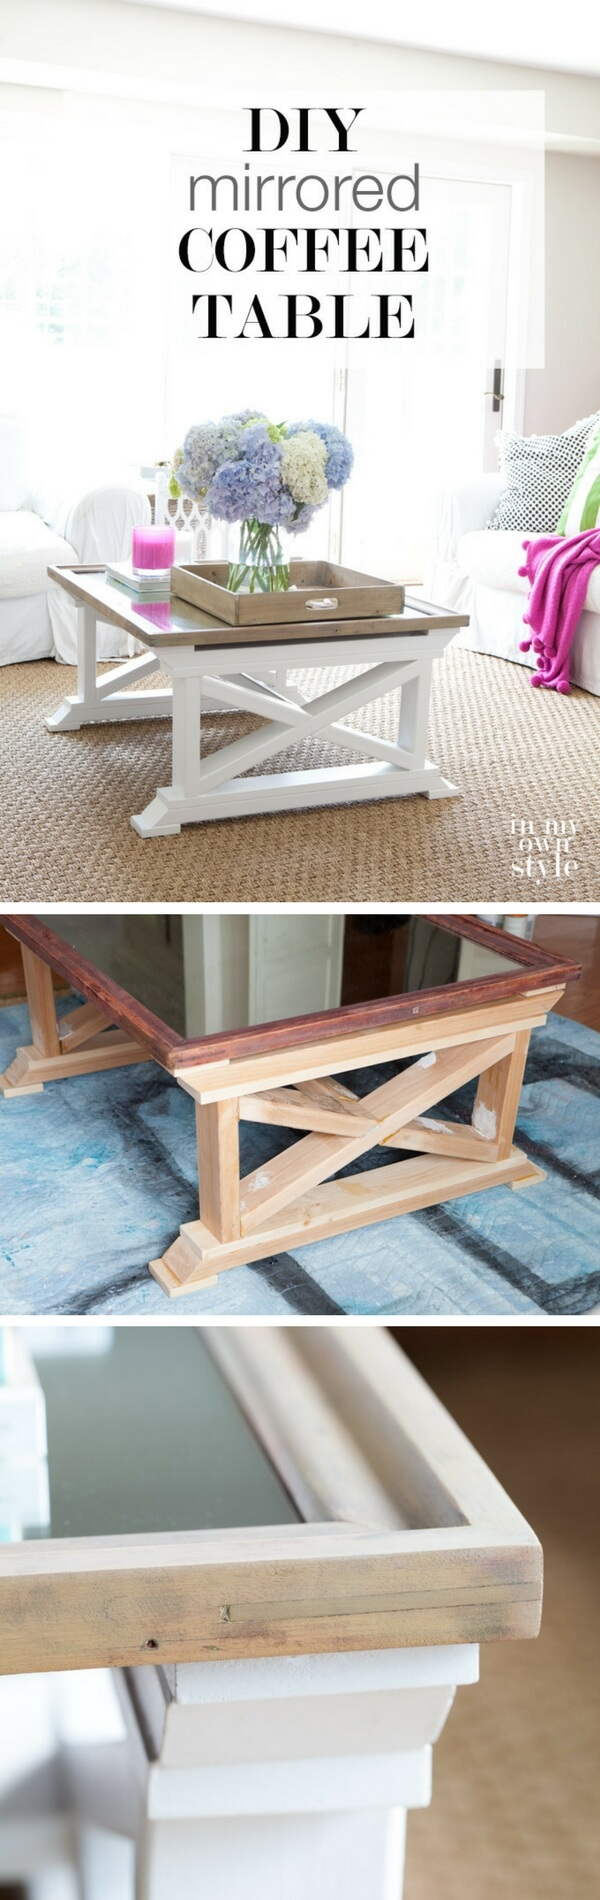 Farmhouse Meets Mod Mirrored Table